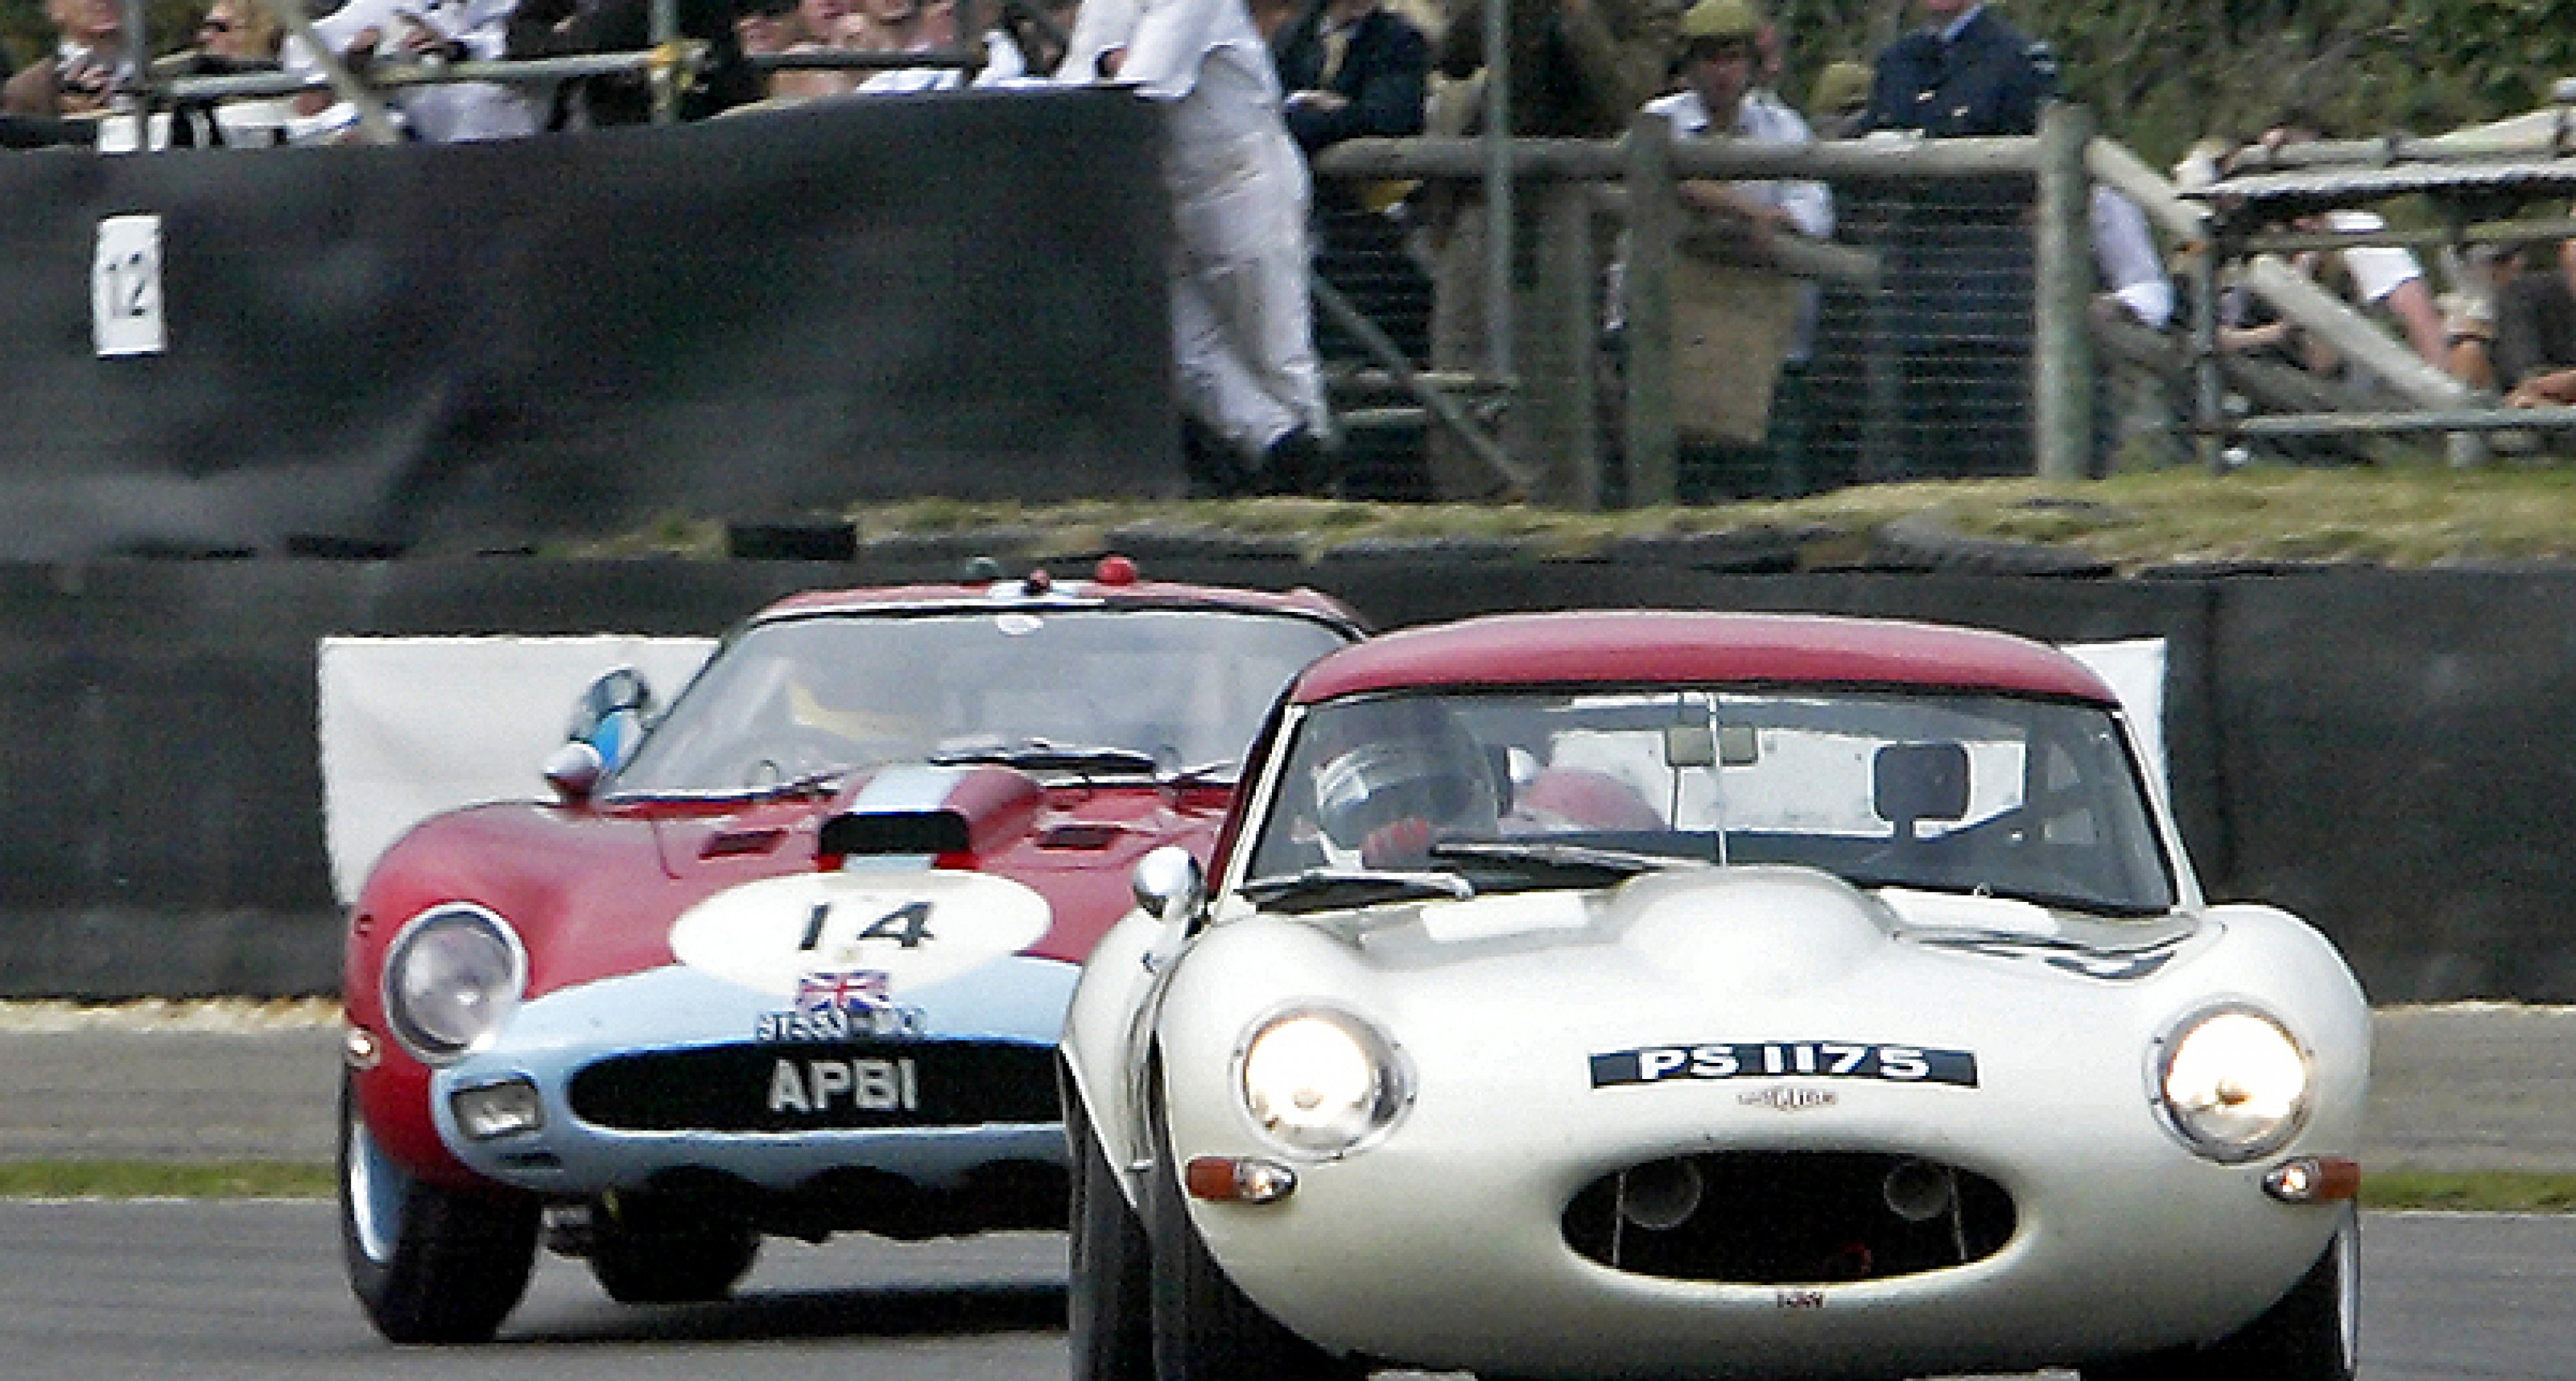 The 2009 Goodwood Revival